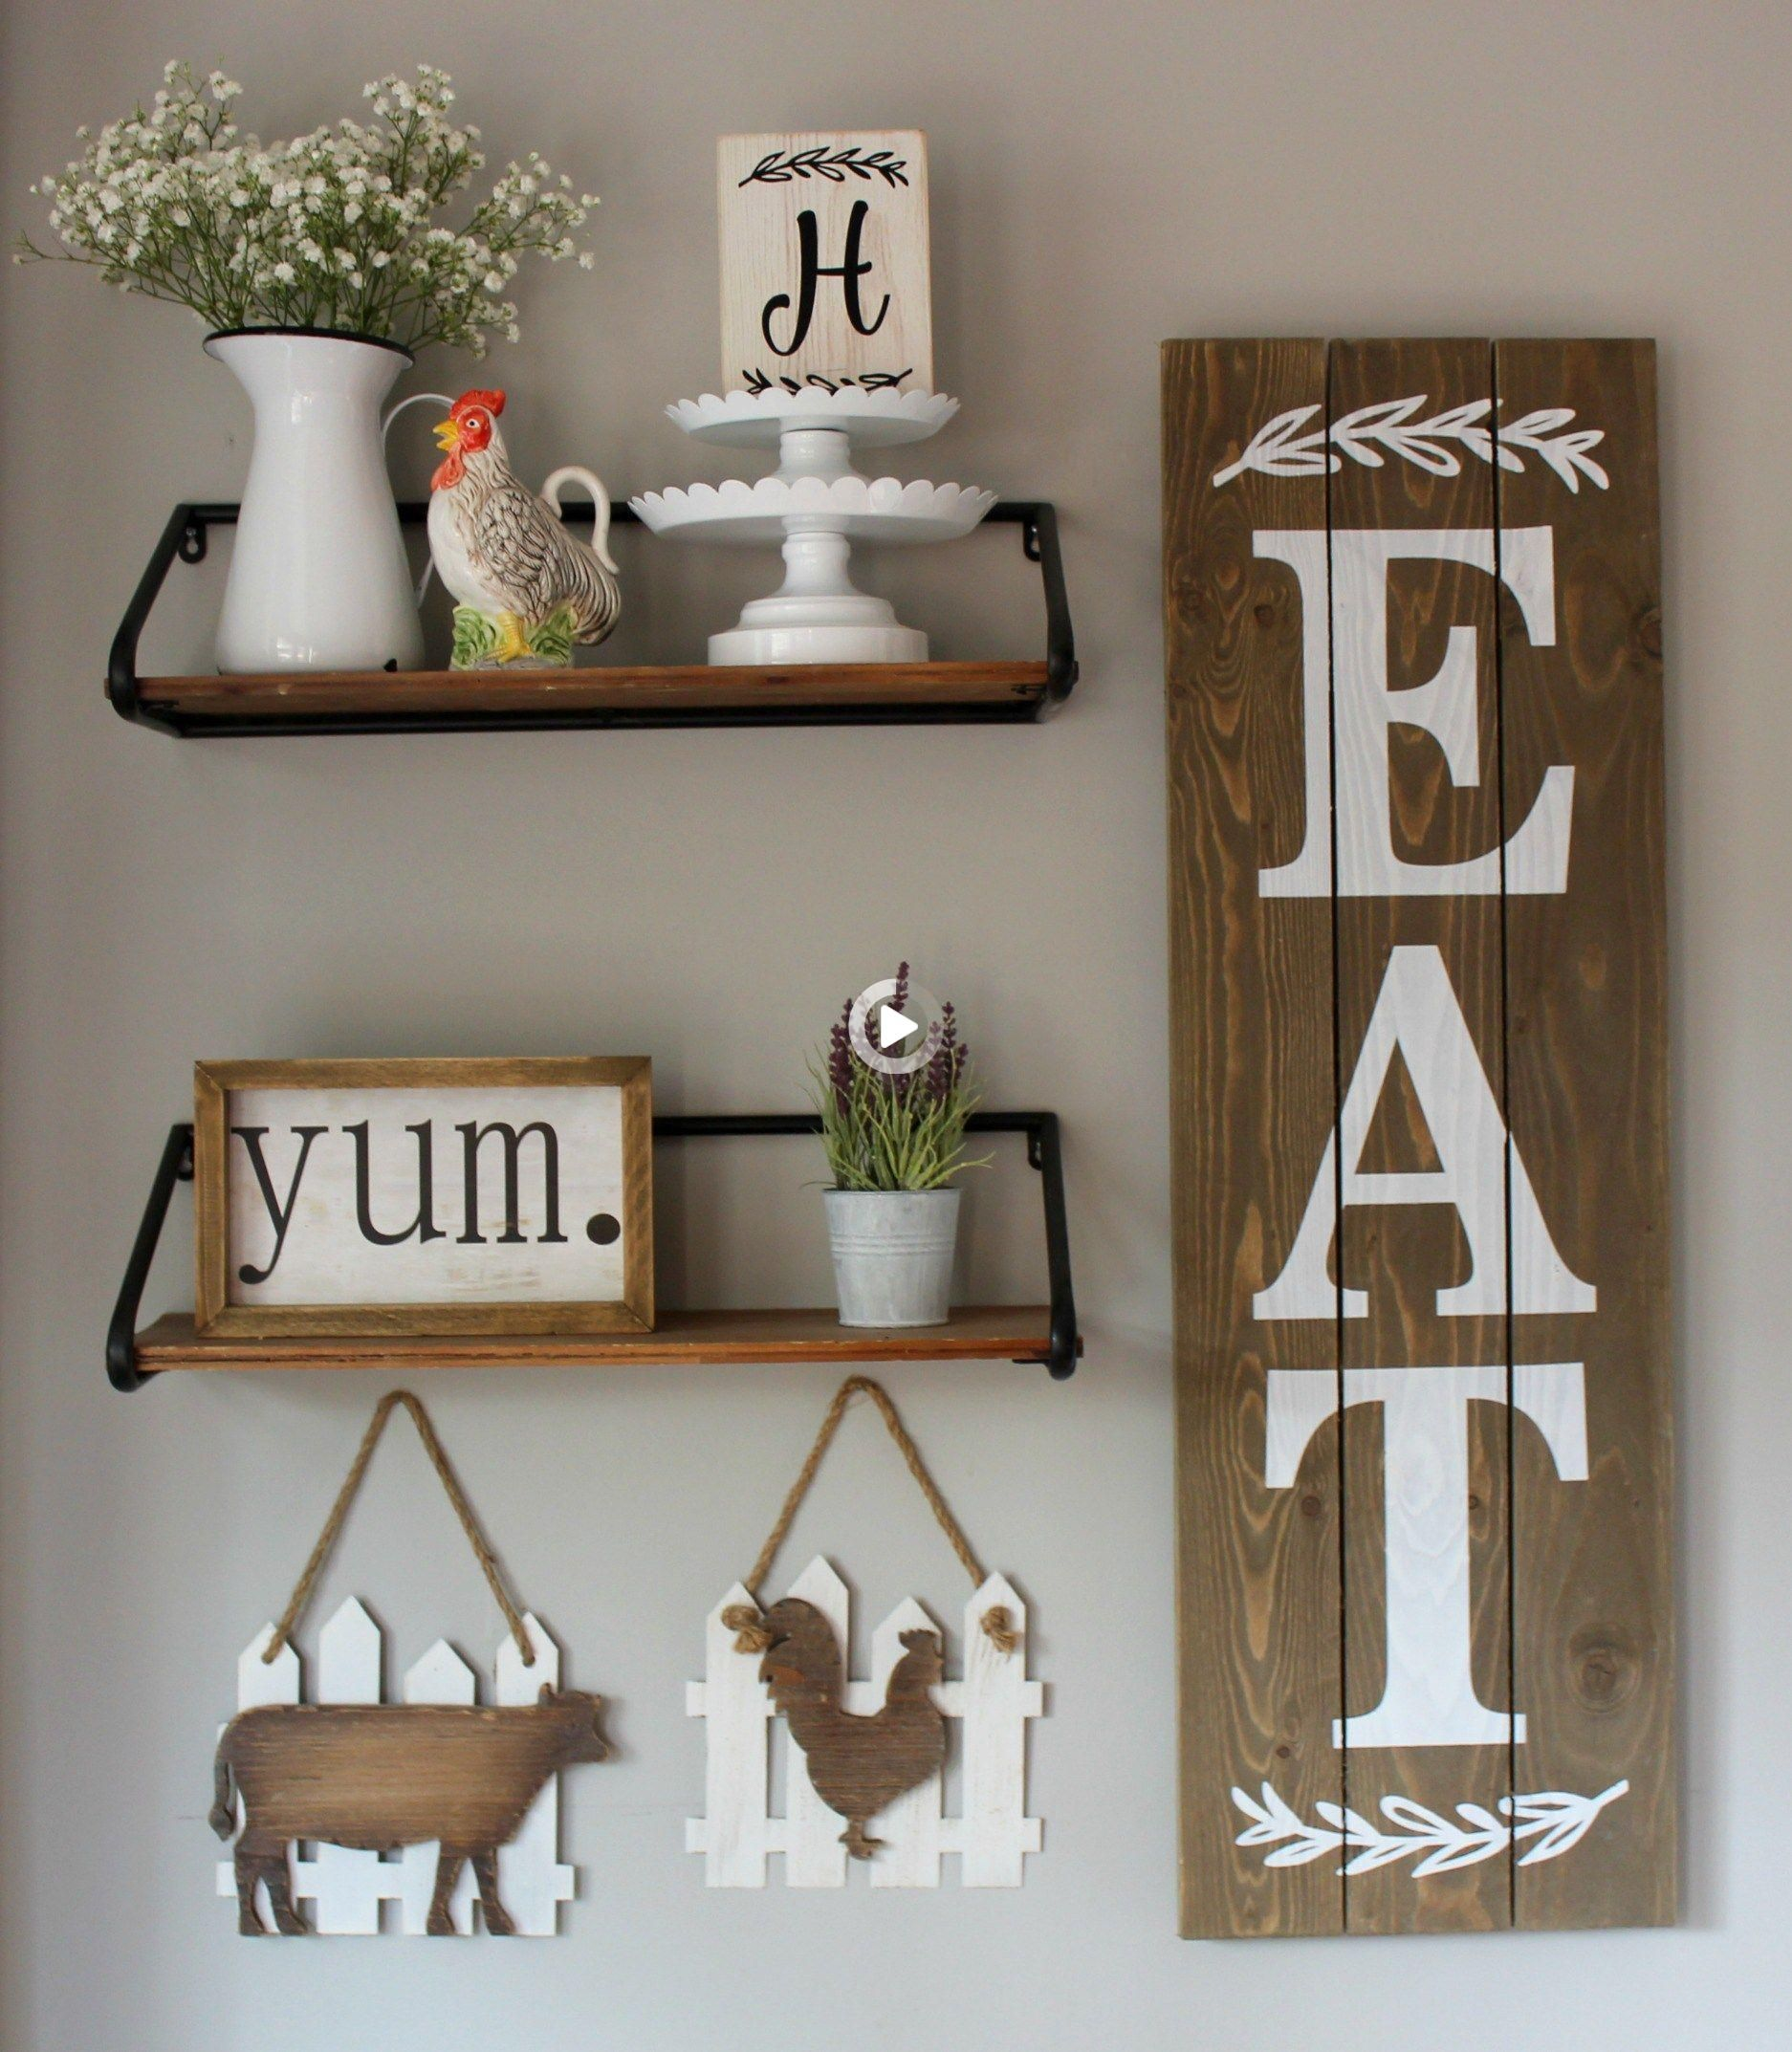 Redirecting In 2021 Kitchen Wall Decor Farmhouse Farmhouse Kitchen Wall Decor Kitchen Wall Decor Country kitchen wall decorations